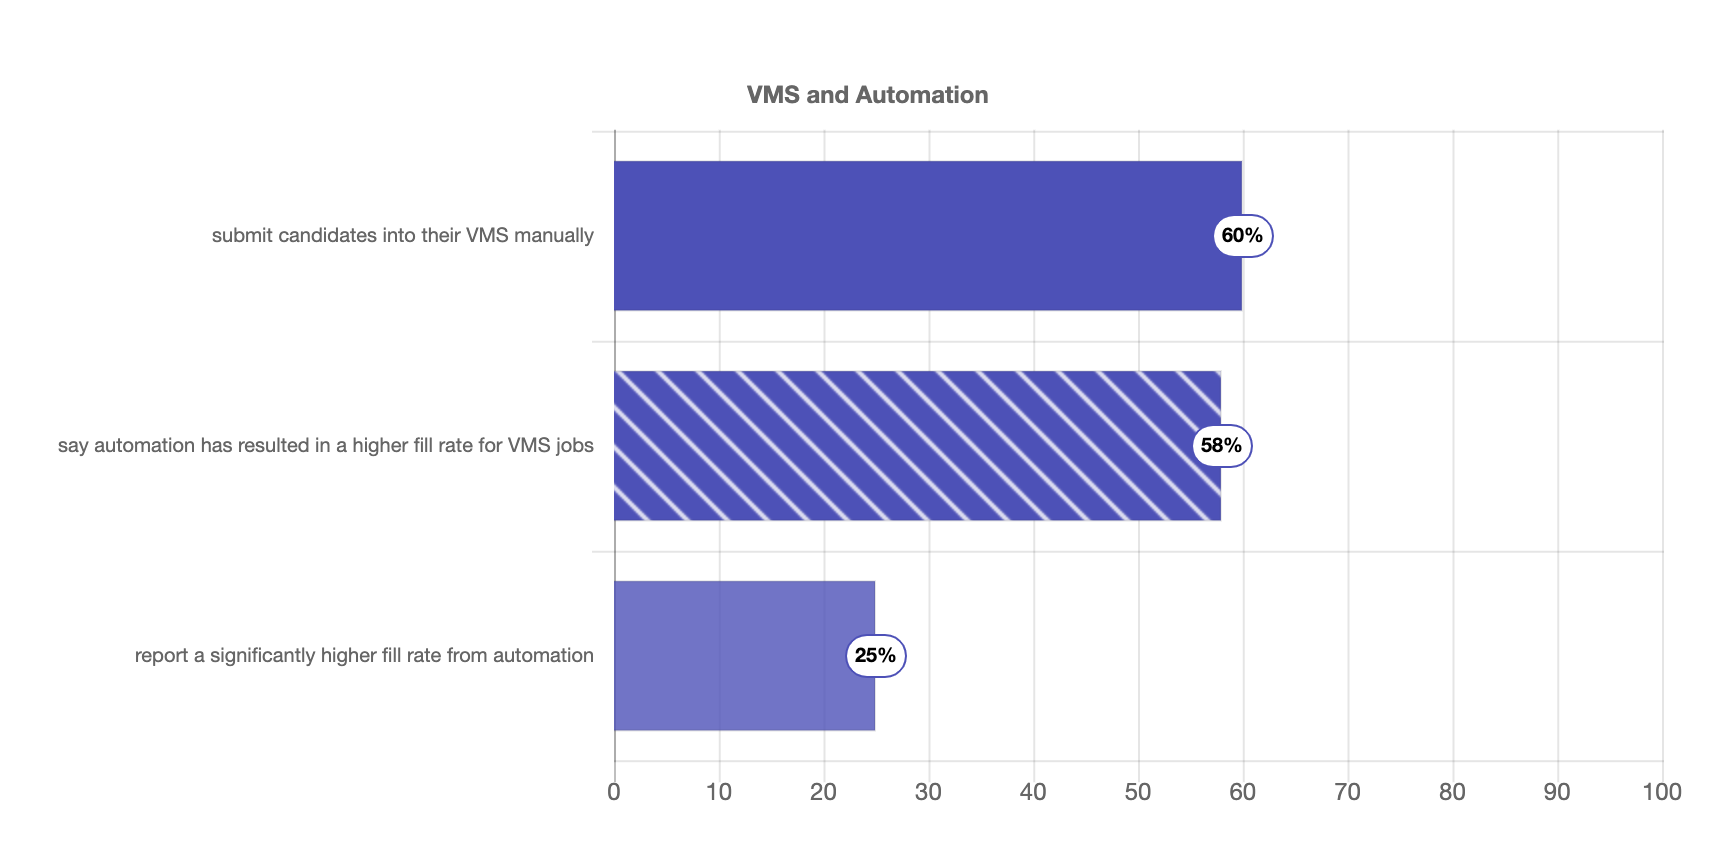 vms automation